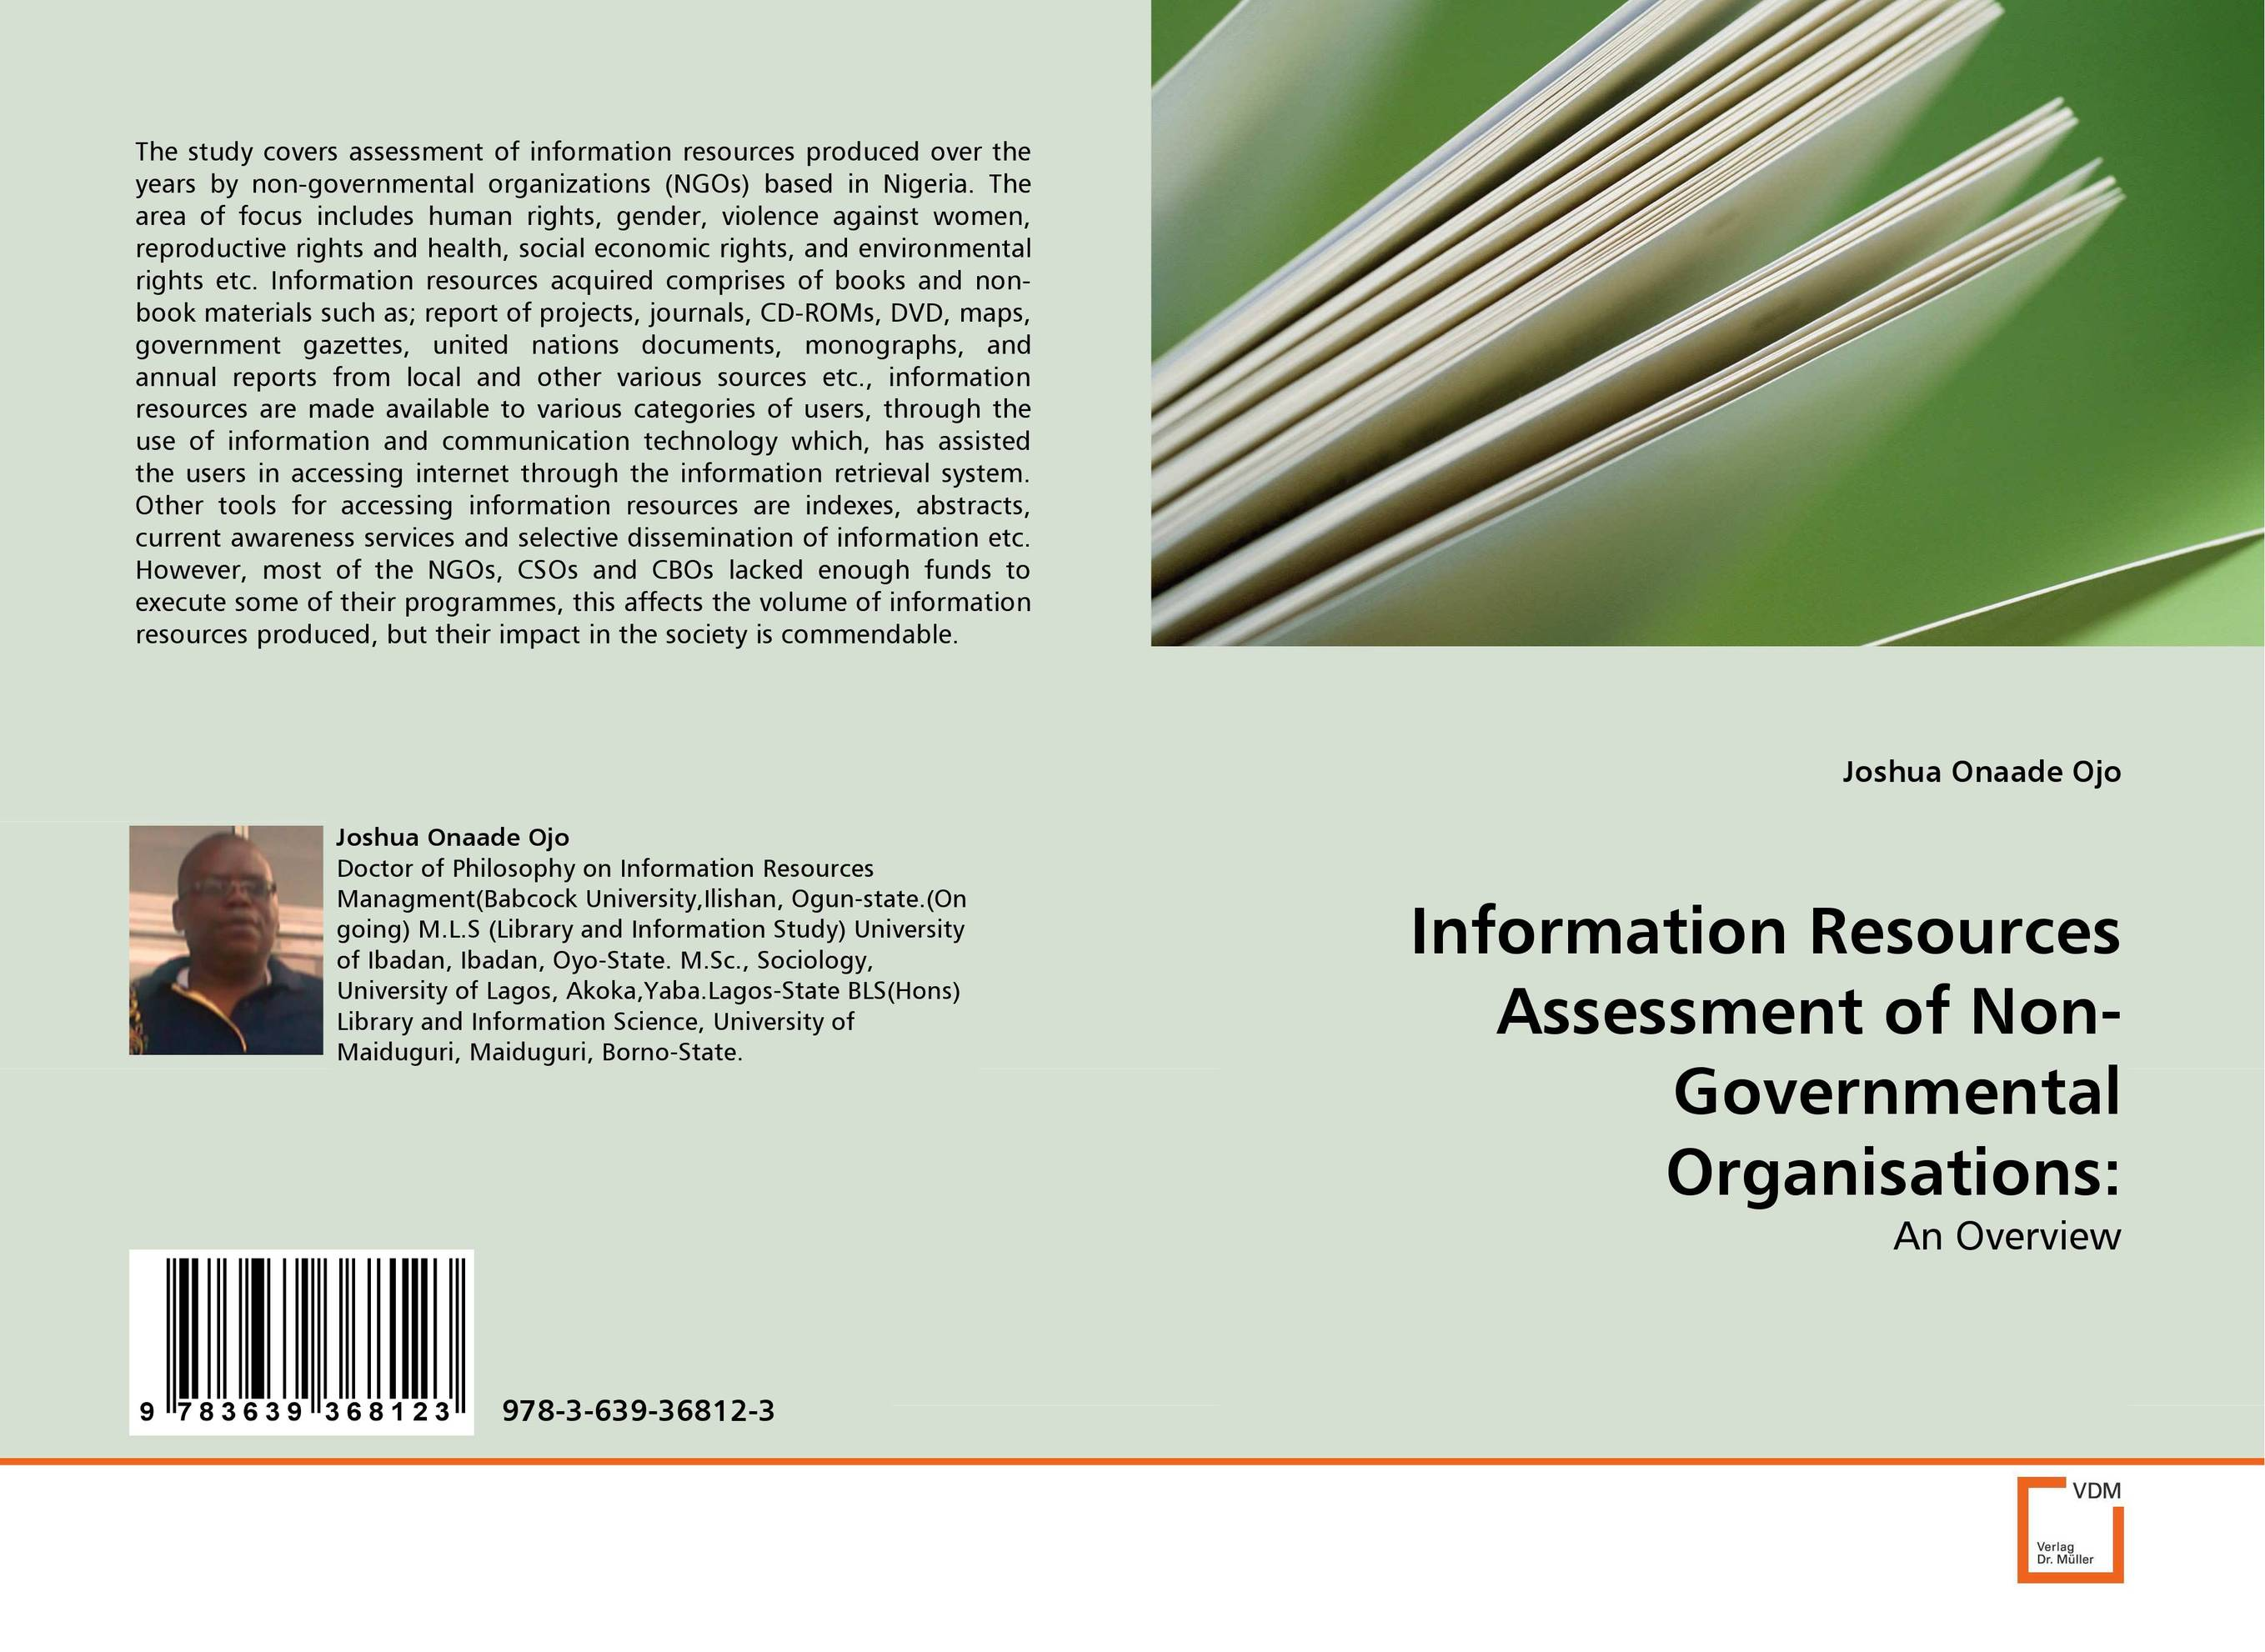 Information Resources Assessment of Non-Governmental Organisations: the challenges experienced by non governmental organisations